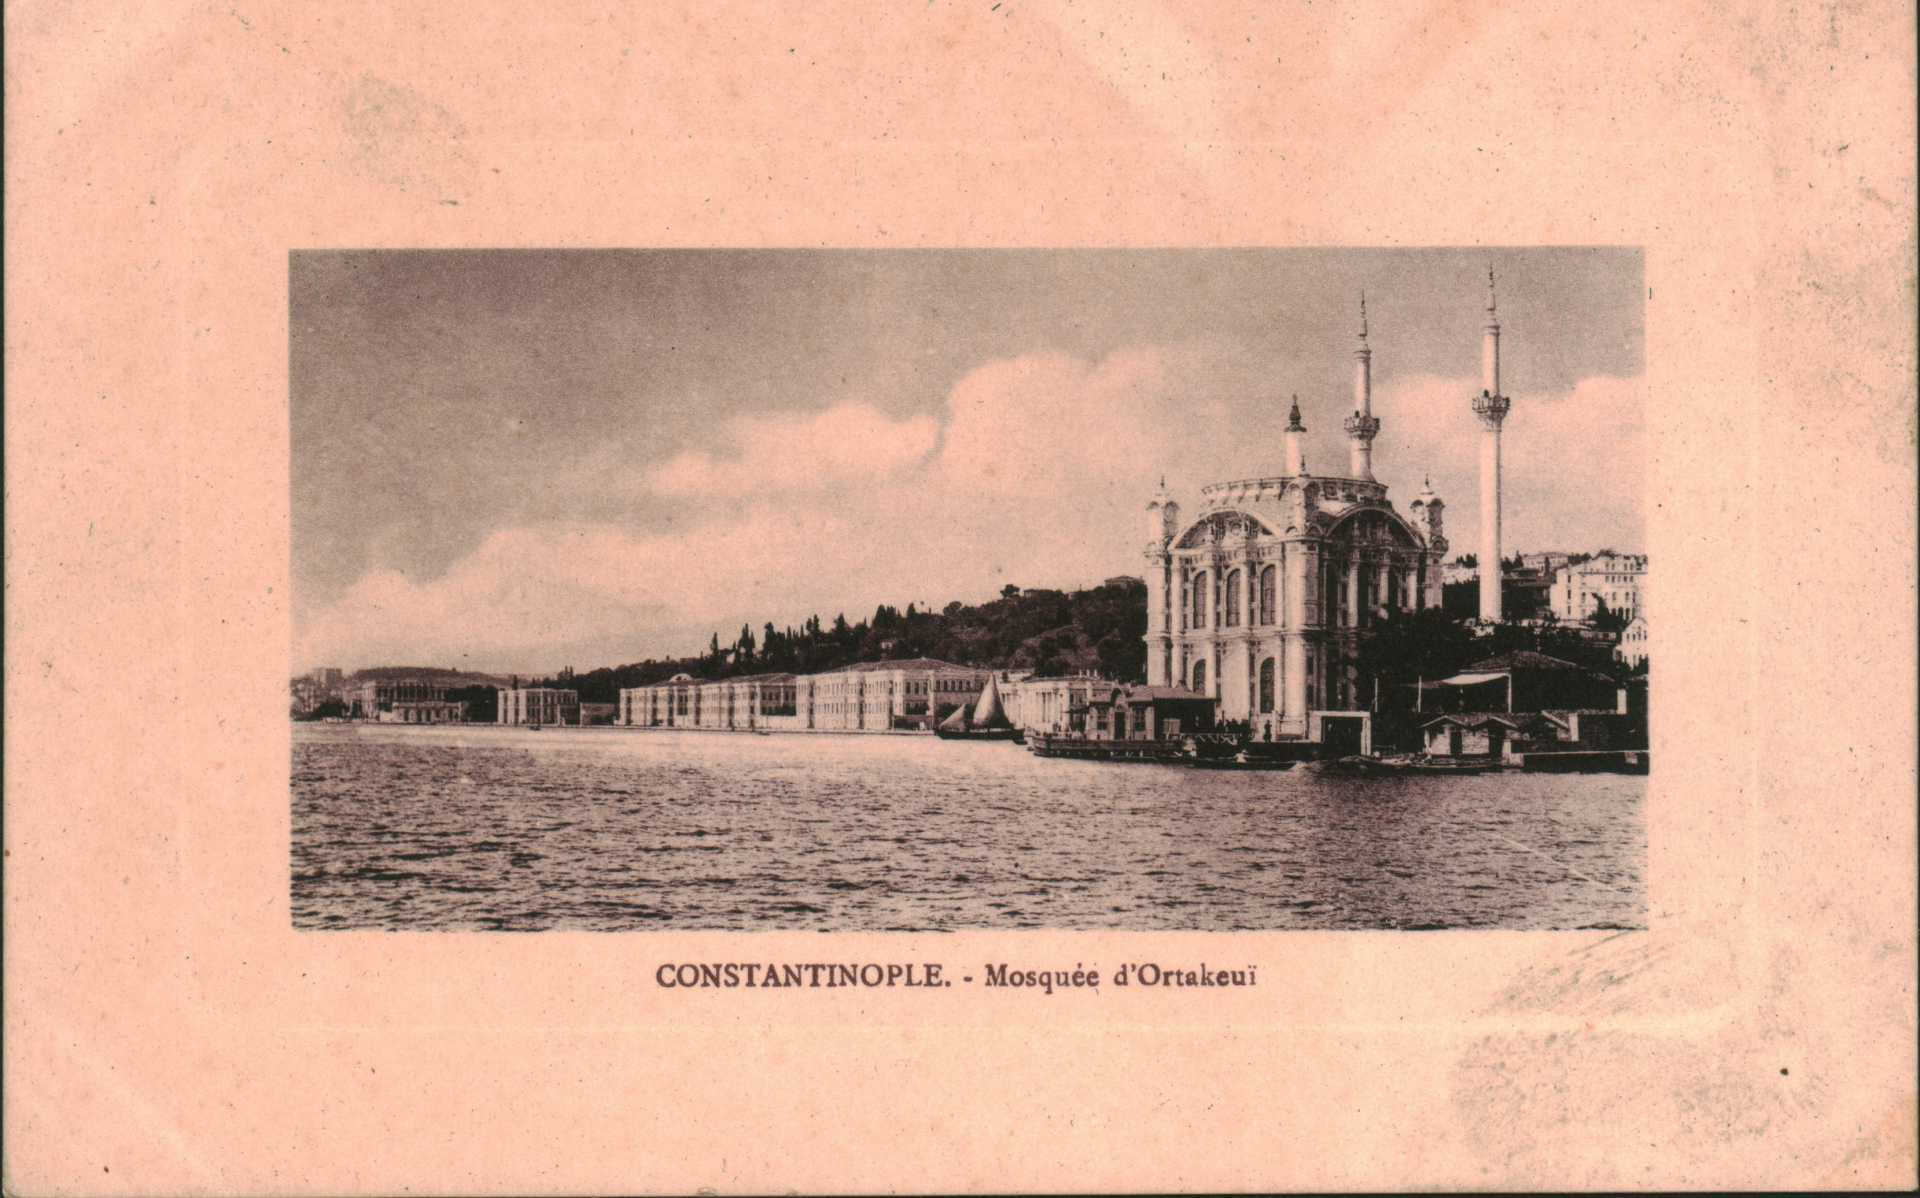 Constantinople. Mosquee d'Ortakeui